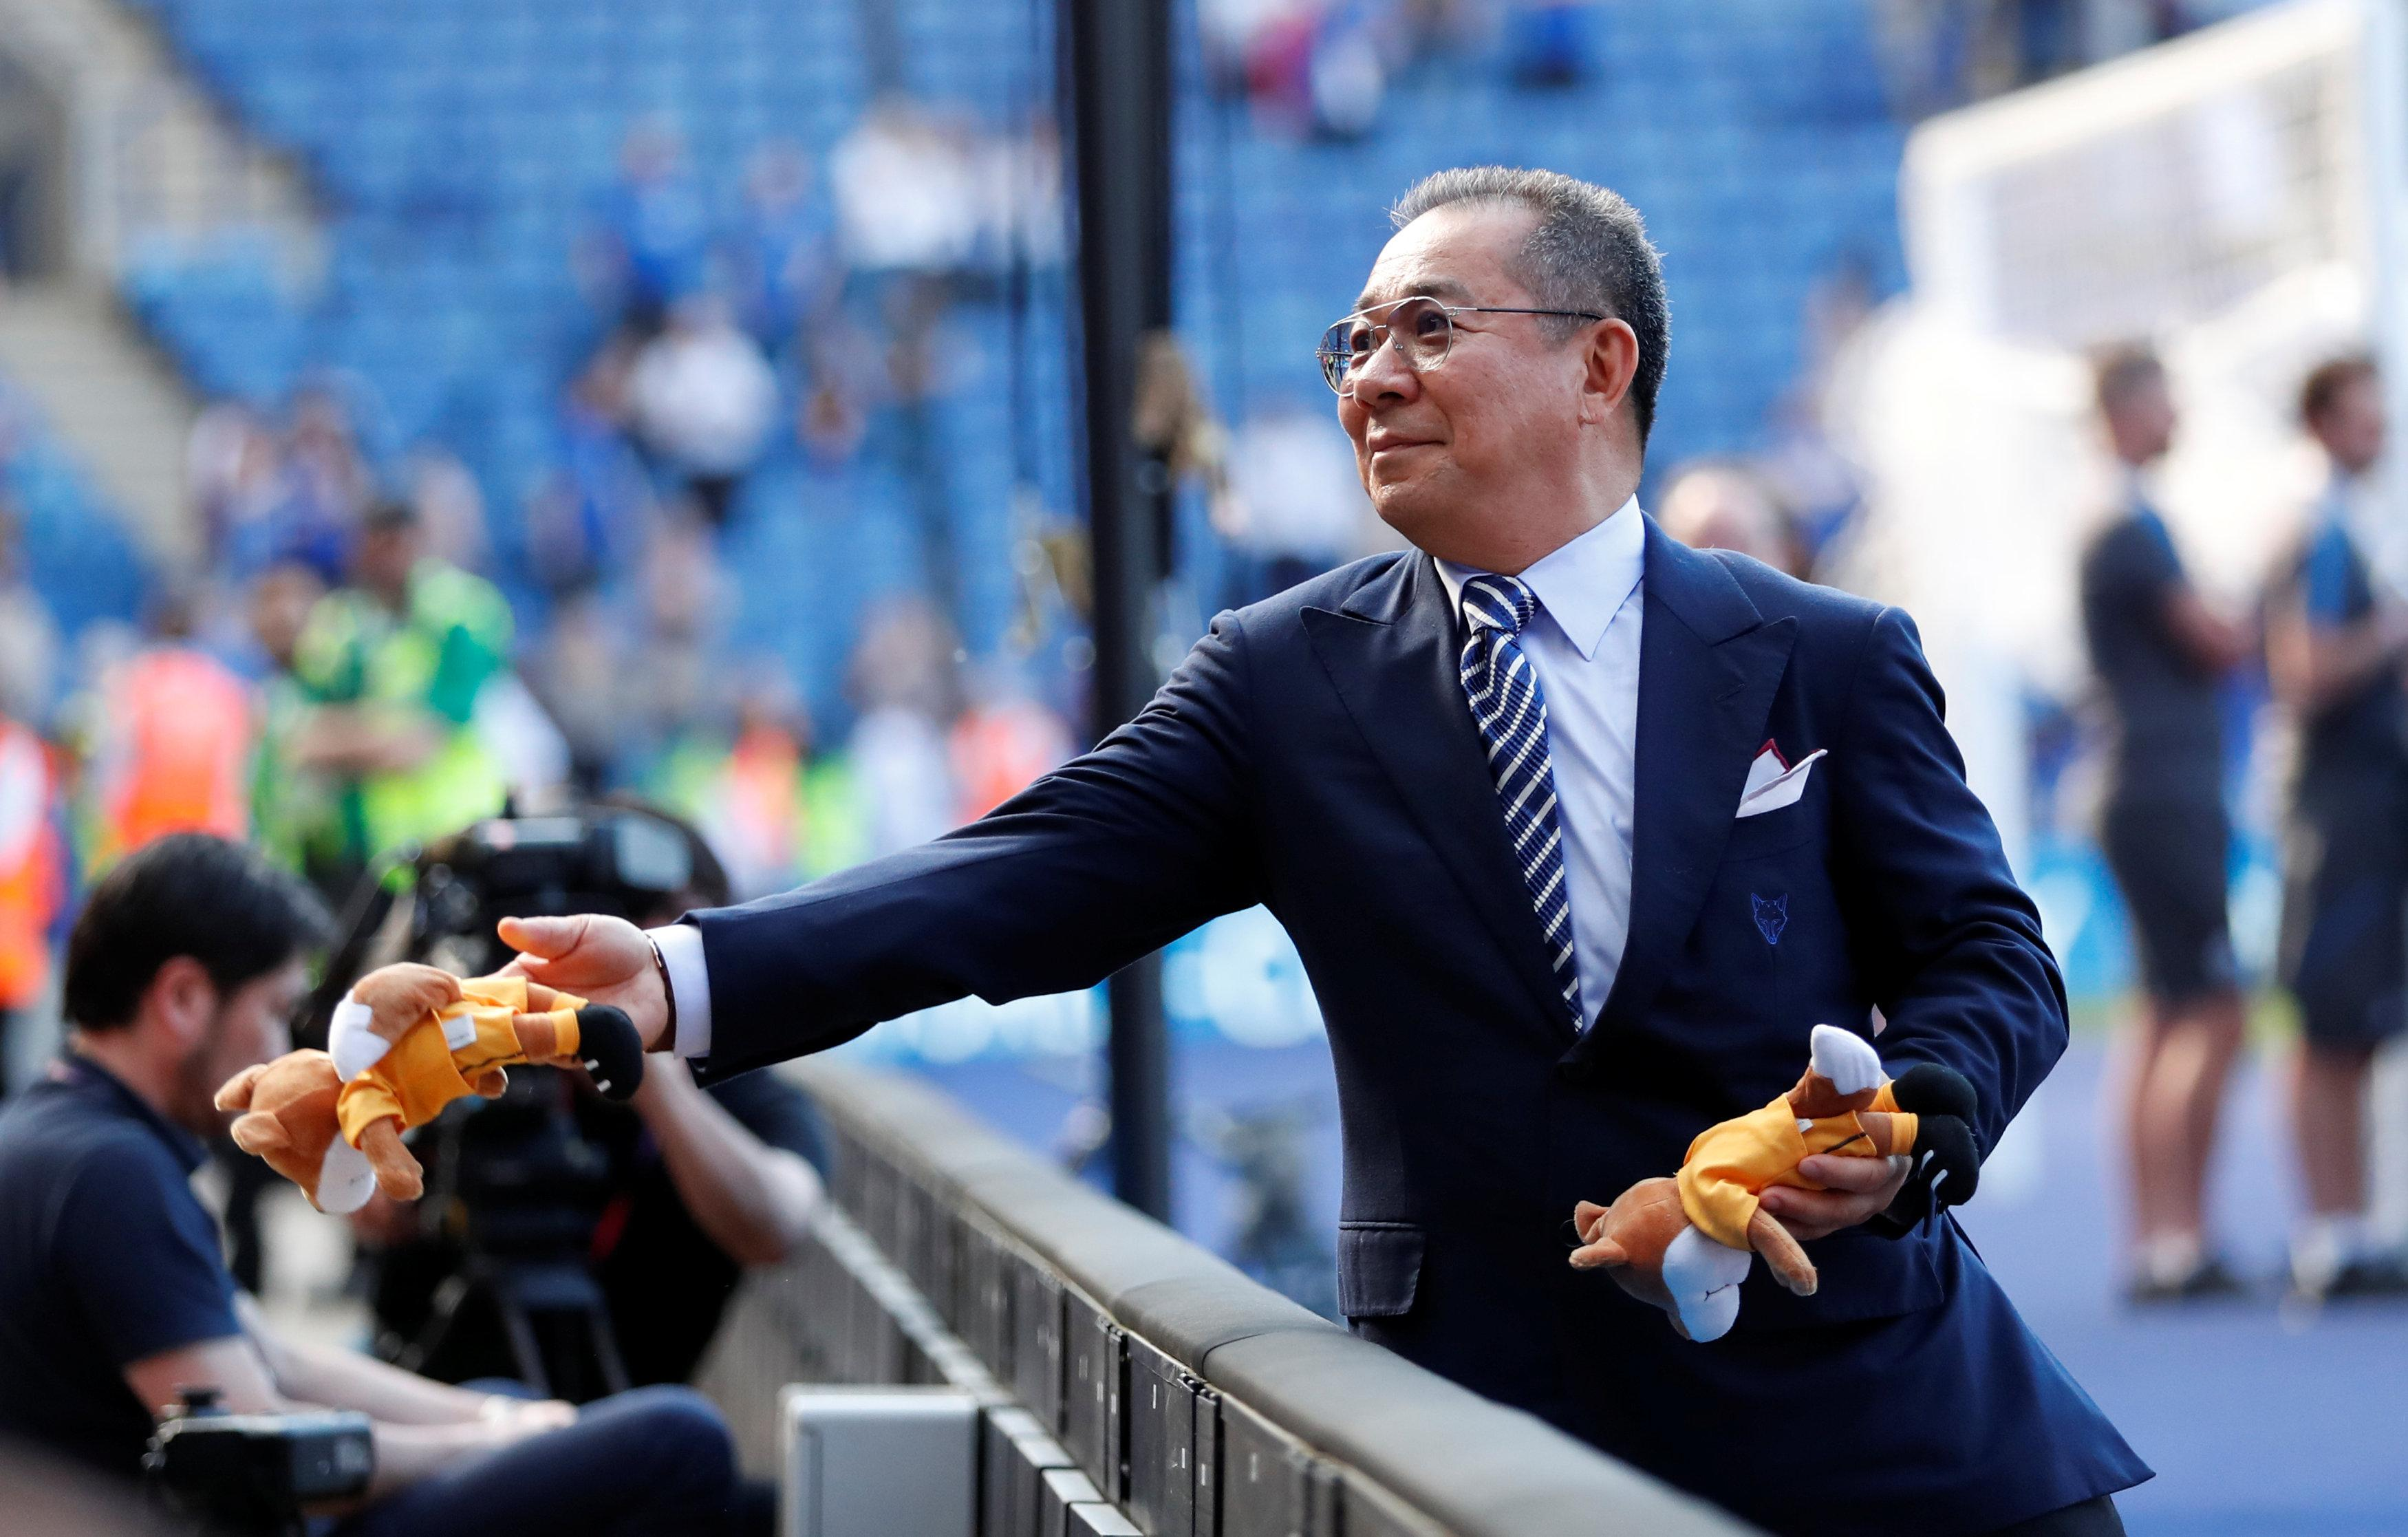 Vichai's generosity meant that fans were often given free gifts